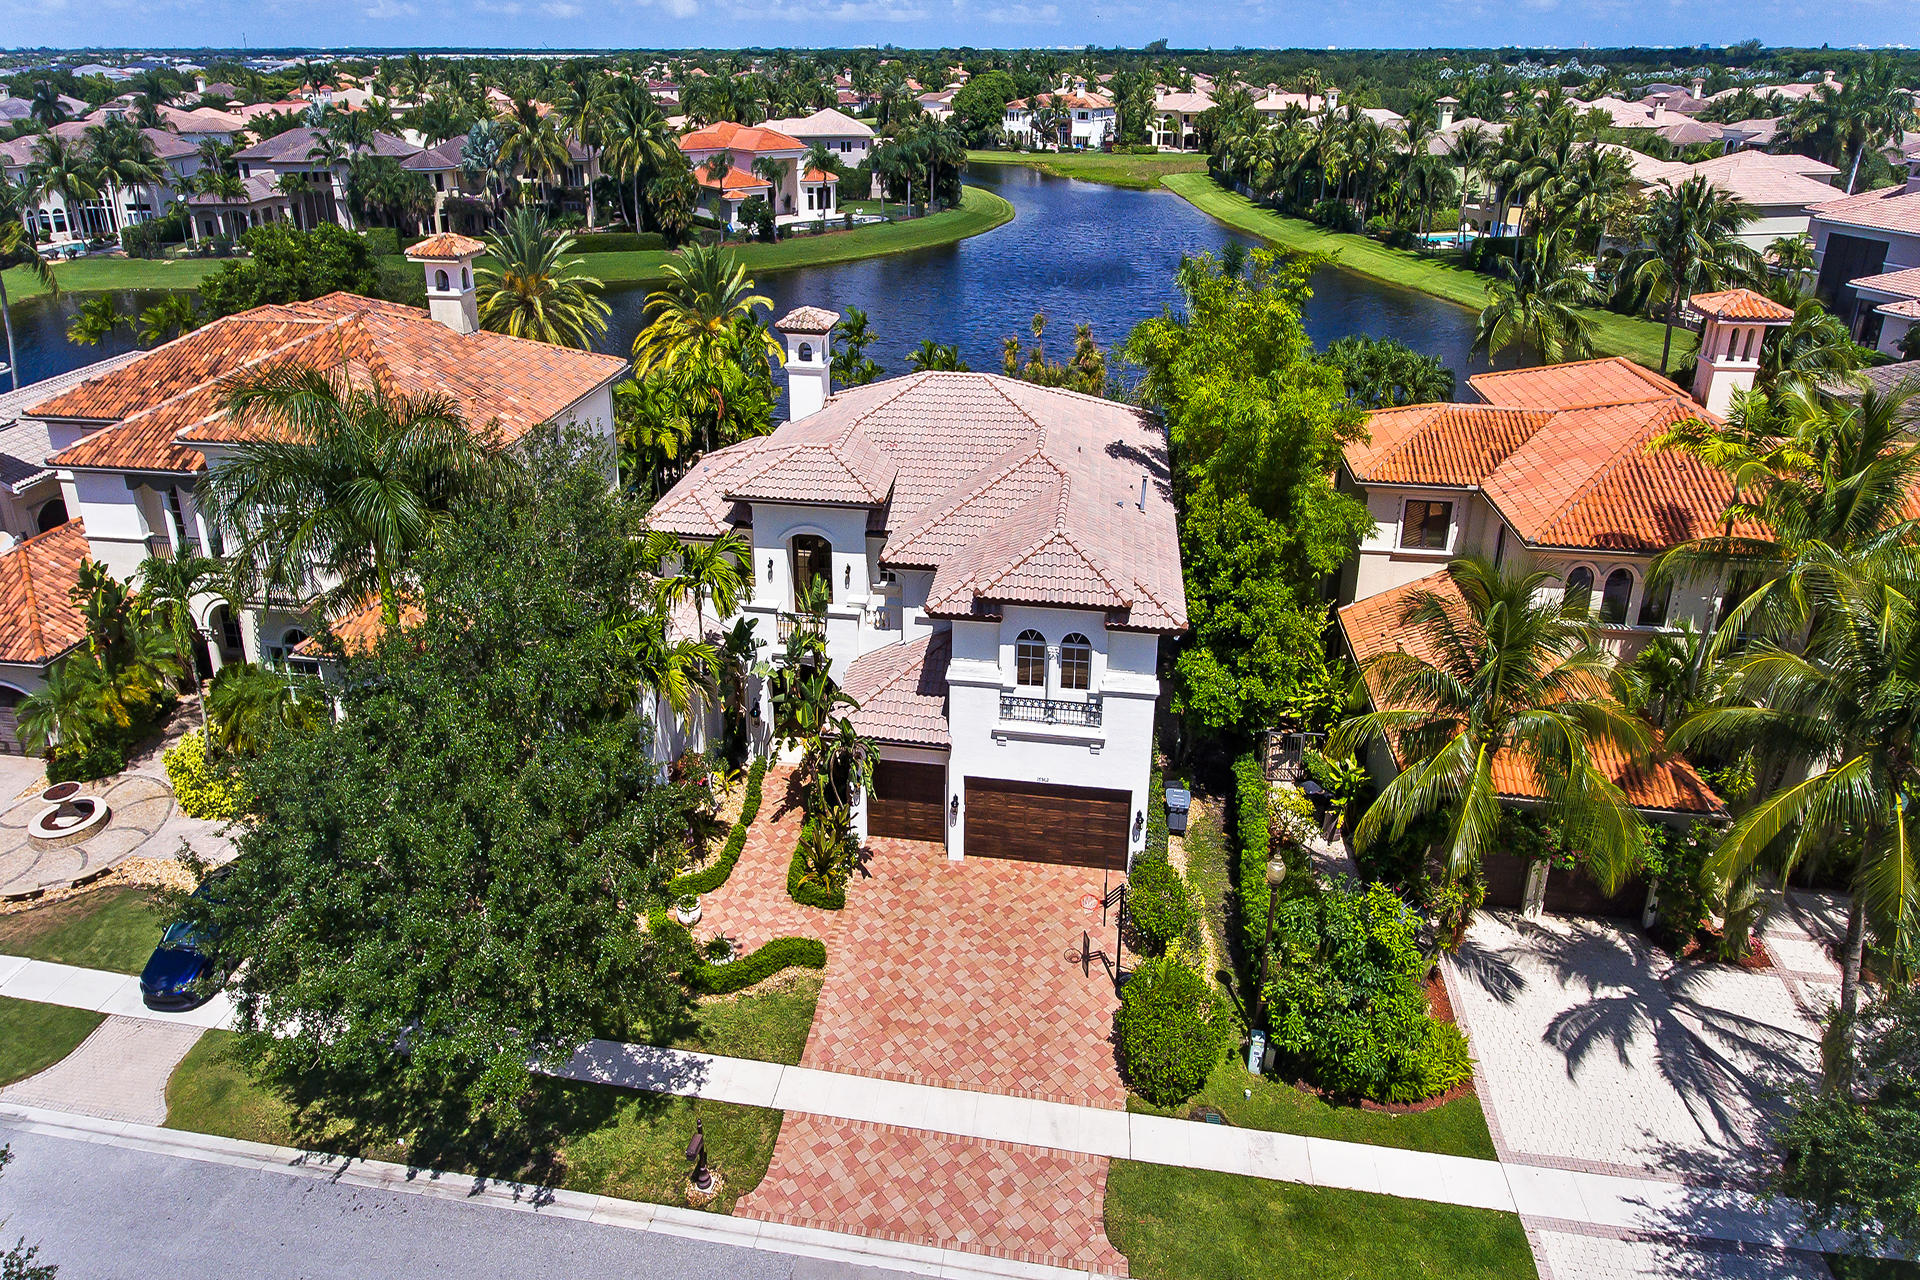 17562 Middlebrook Way, Boca Raton, Florida 33496, 5 Bedrooms Bedrooms, ,6.2 BathroomsBathrooms,Single family detached,For sale,Middlebrook,RX-10627387